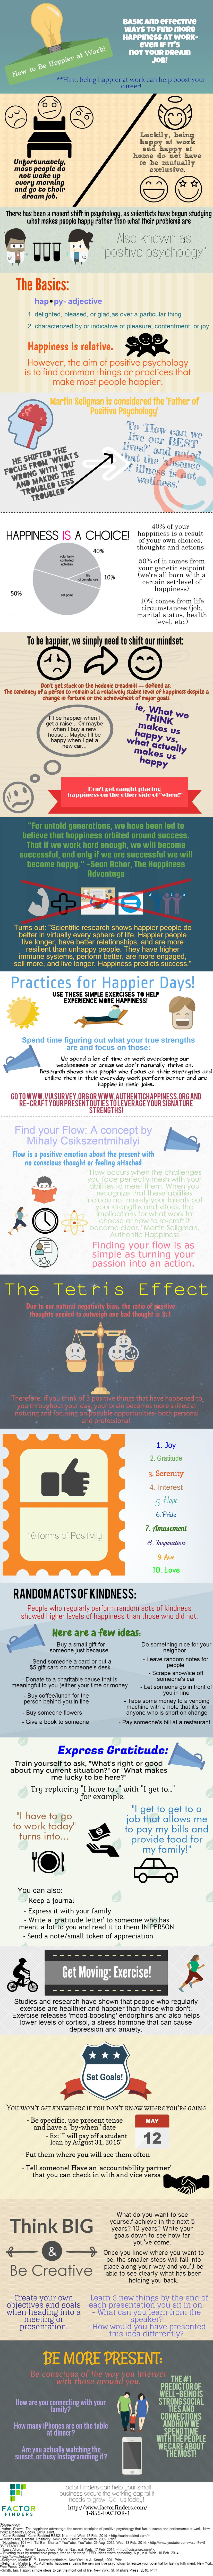 Work Happiness Infographic